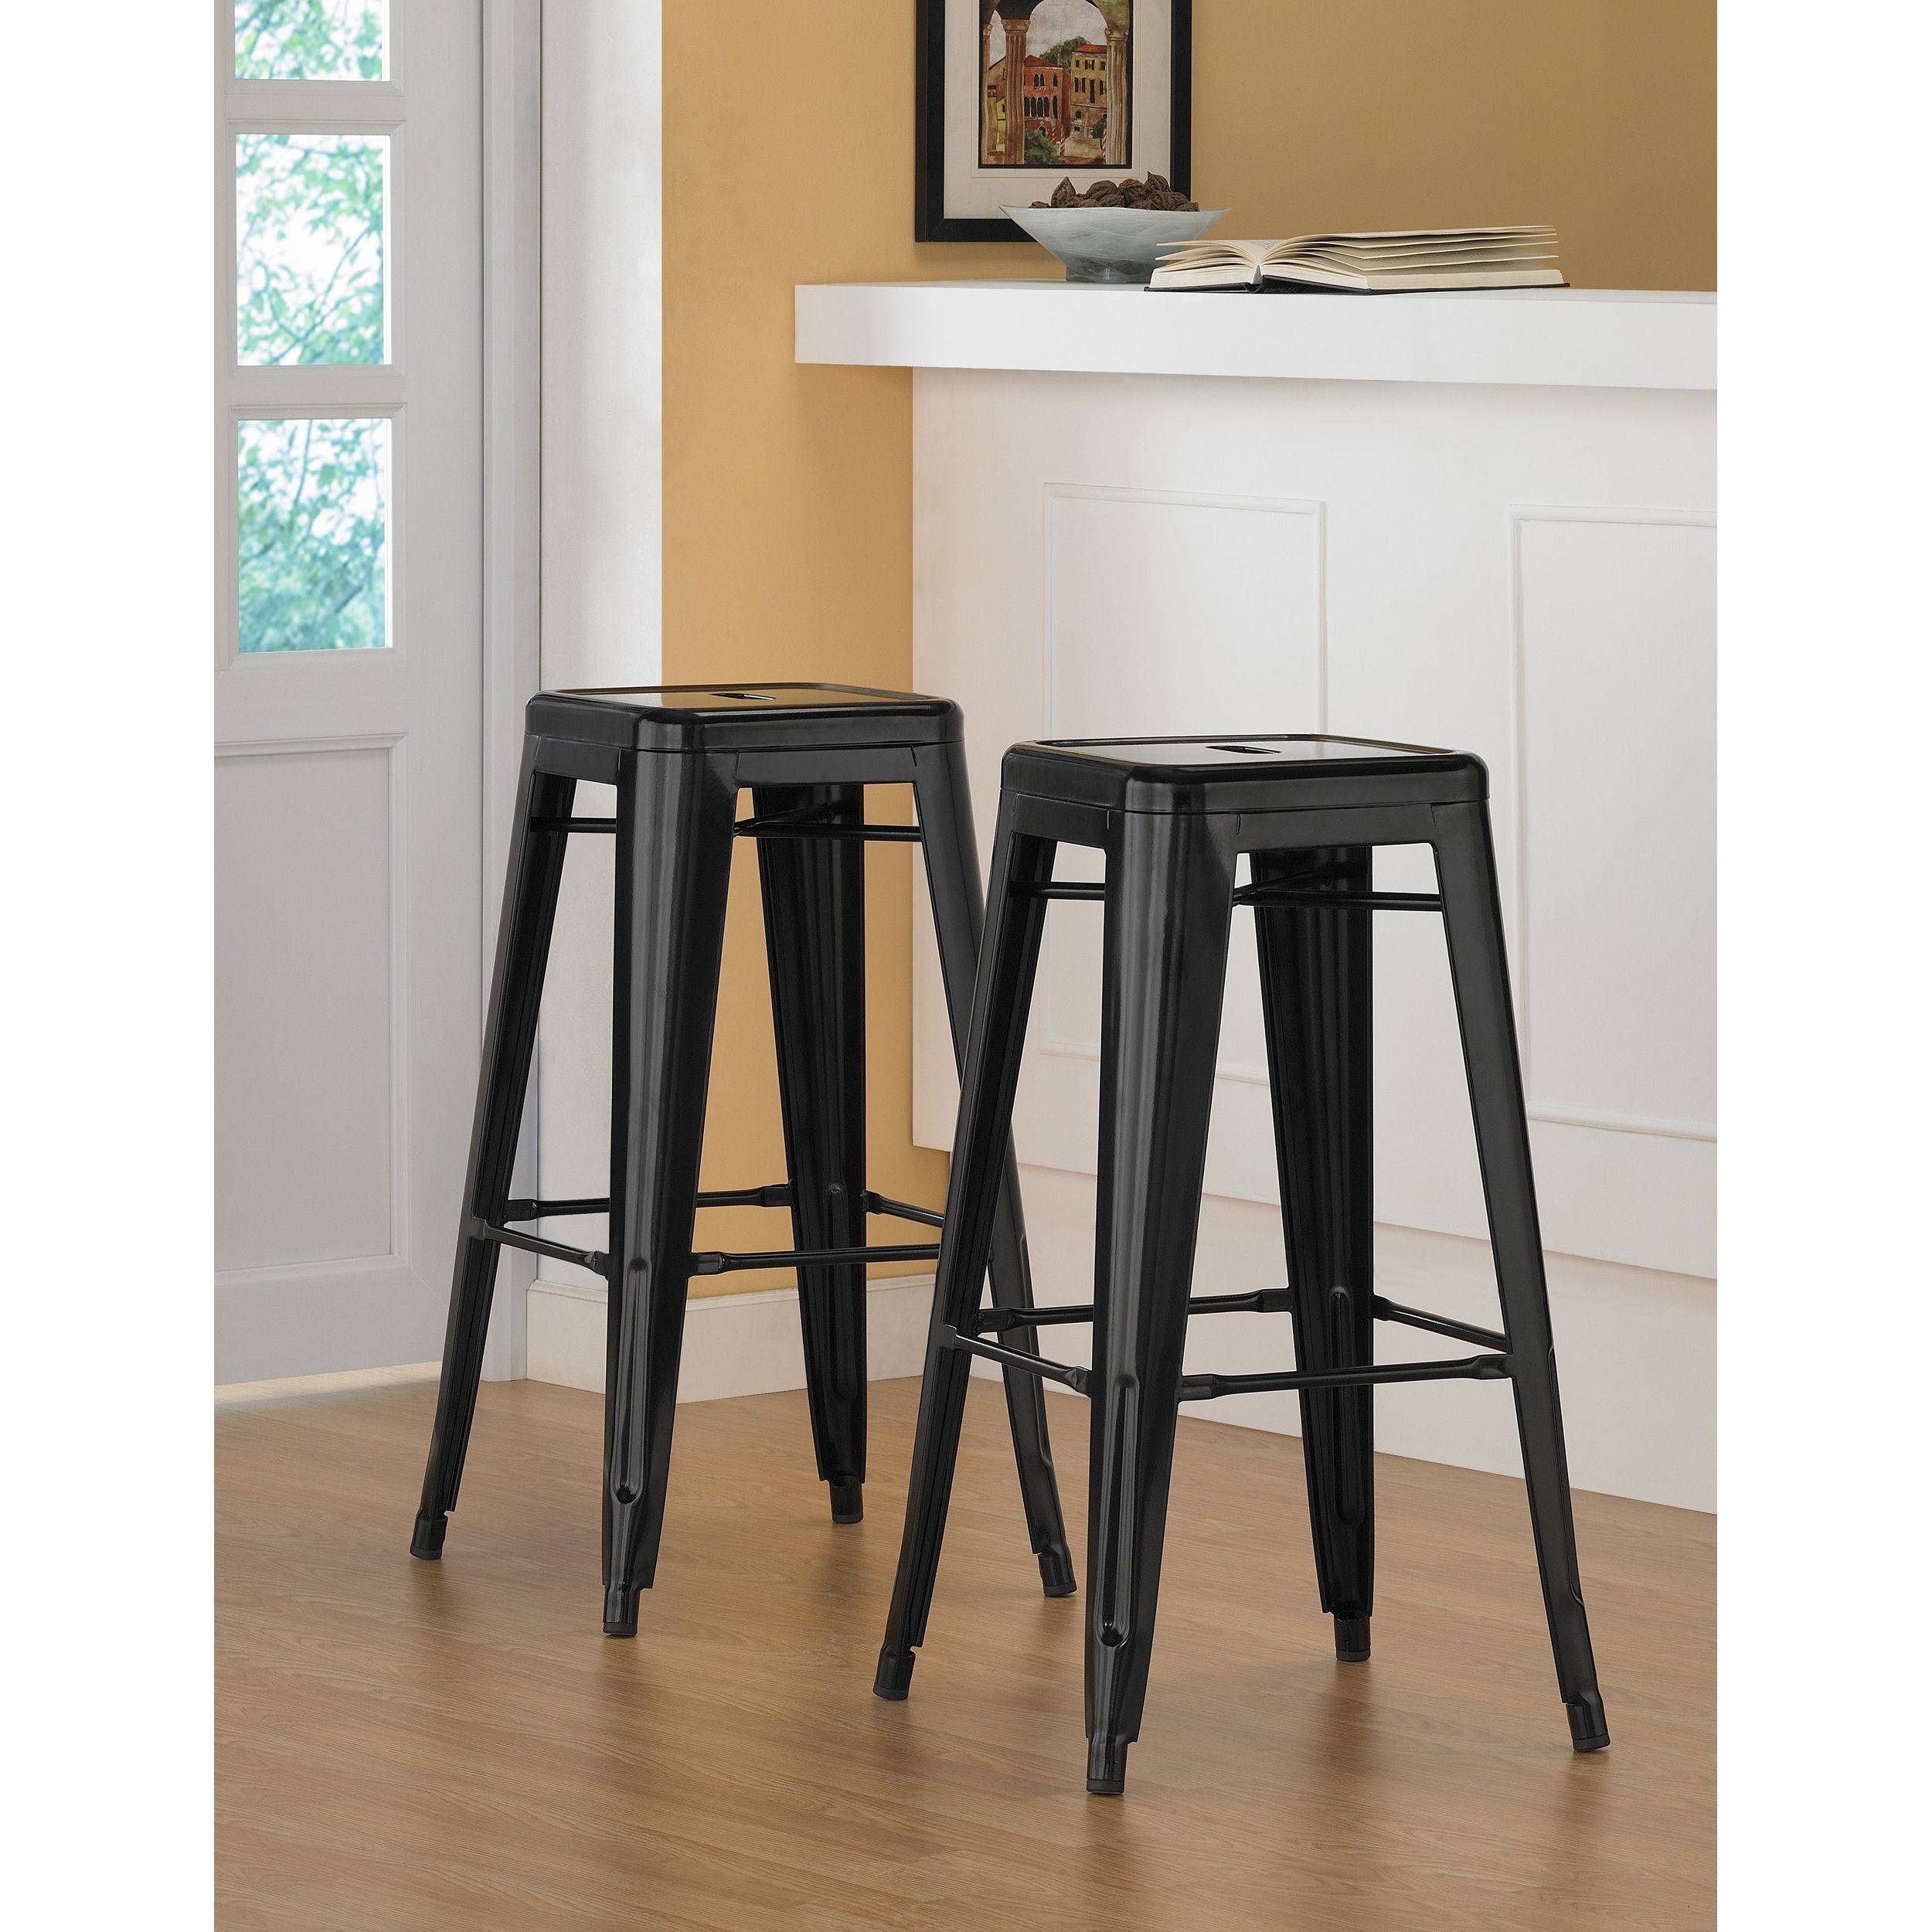 Dimensions tabouret inch metal bar stools products pinterest